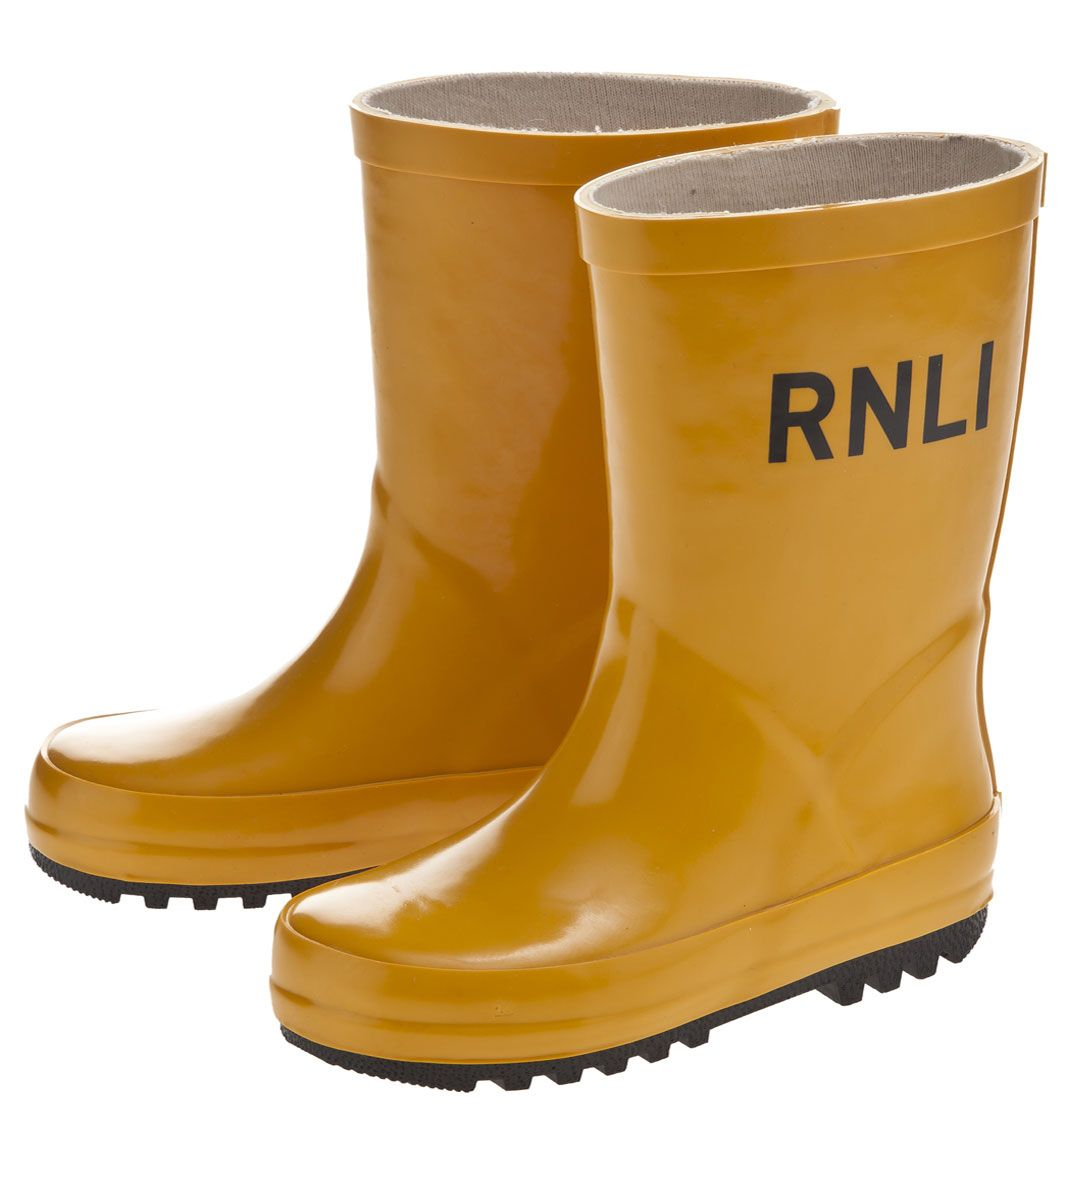 Kids Crew Wellies - RNLI Gifts - Shop by Category - Gifts for Children UK